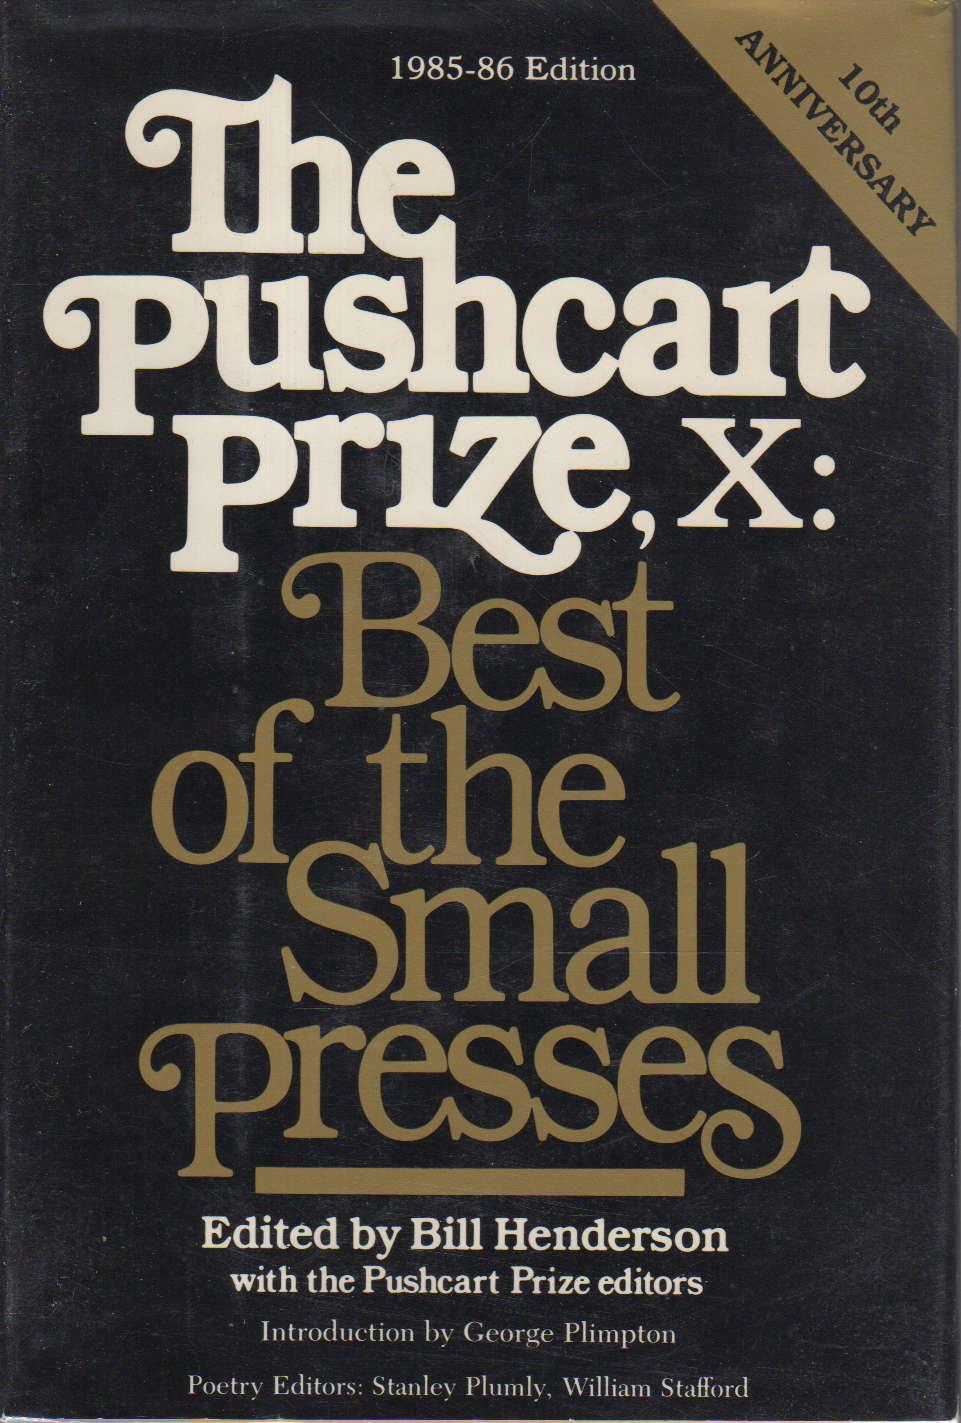 THE PUSHCART PRIZE X: Best of the Small Presses, 1985 - 1986. - Anthology, signed] Bill Henderson, Bill, editor. Alberto Alvarez Rios, signed